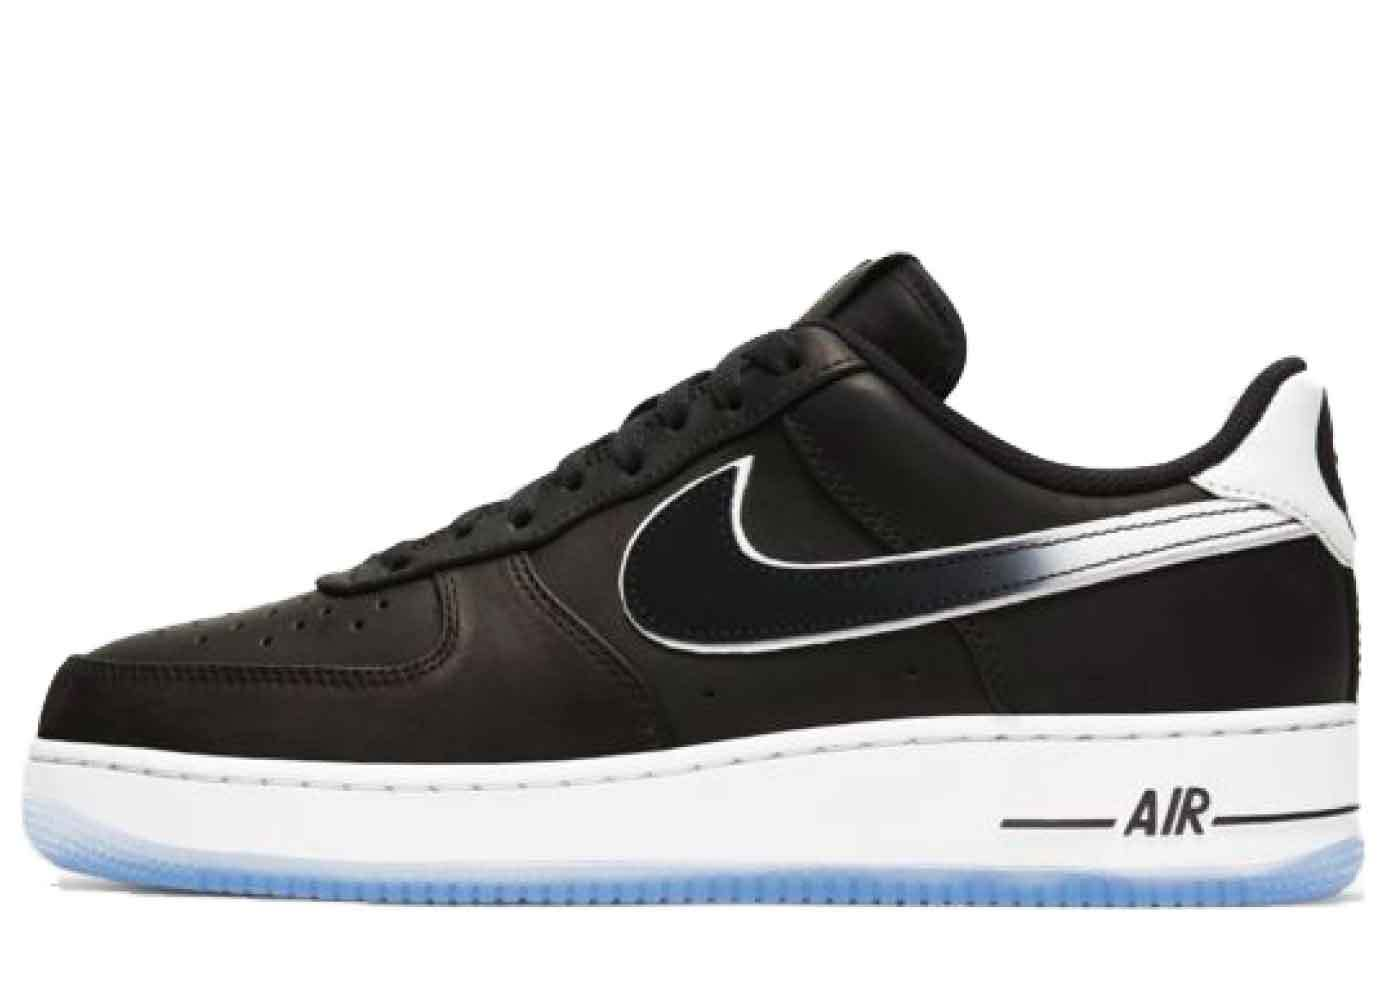 Nike Air Force 1 Low Colin Kaepernickの写真